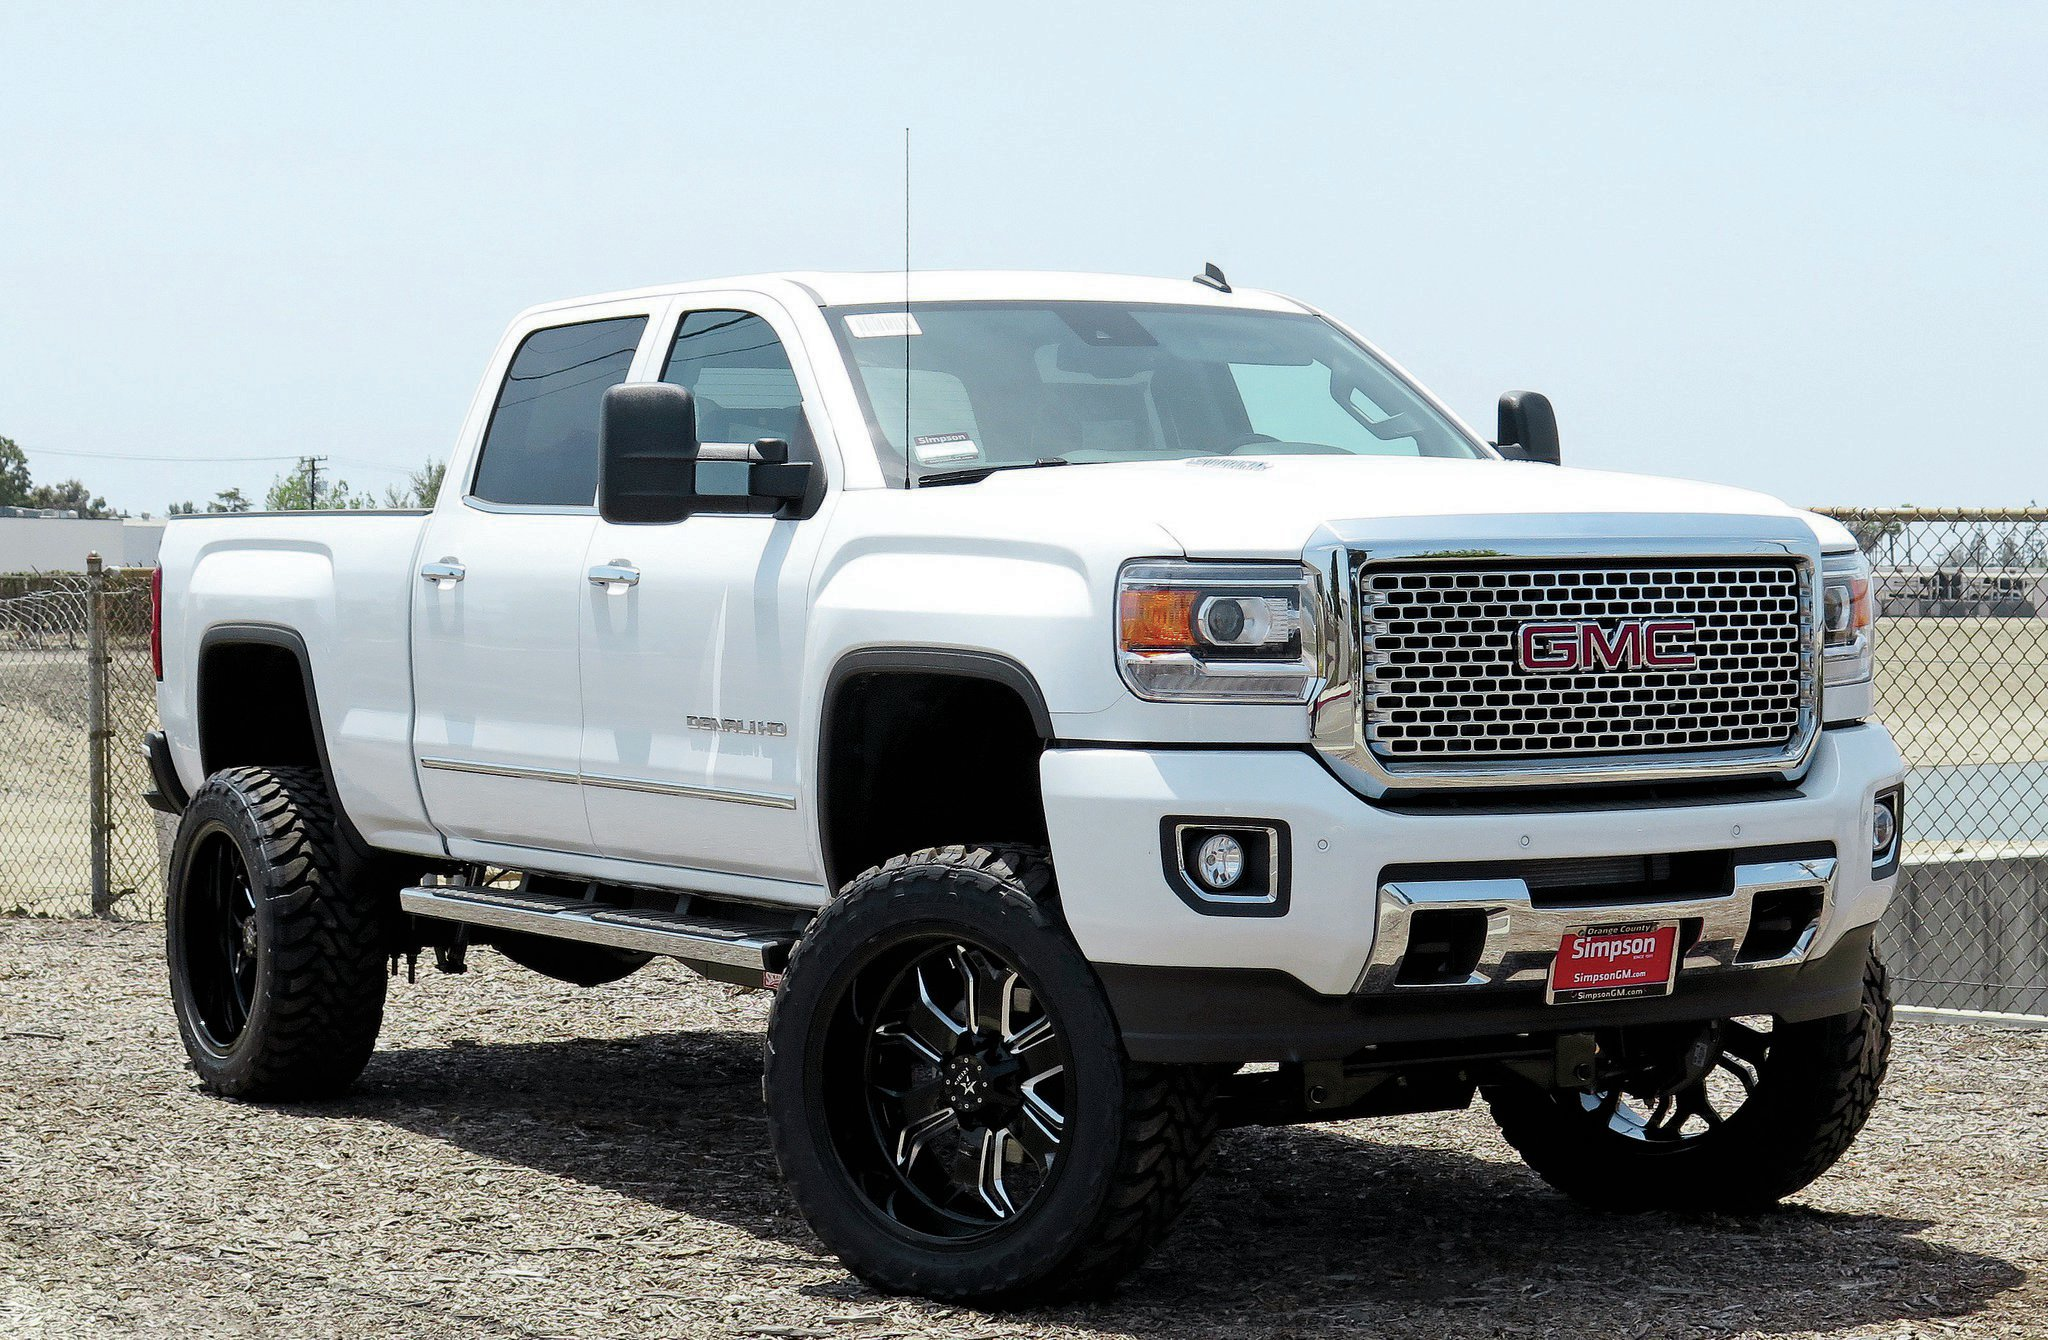 2015 Gmc Sierra 2500hd Cst Suspension 8 Inch Lift Install Photo Image Gallery